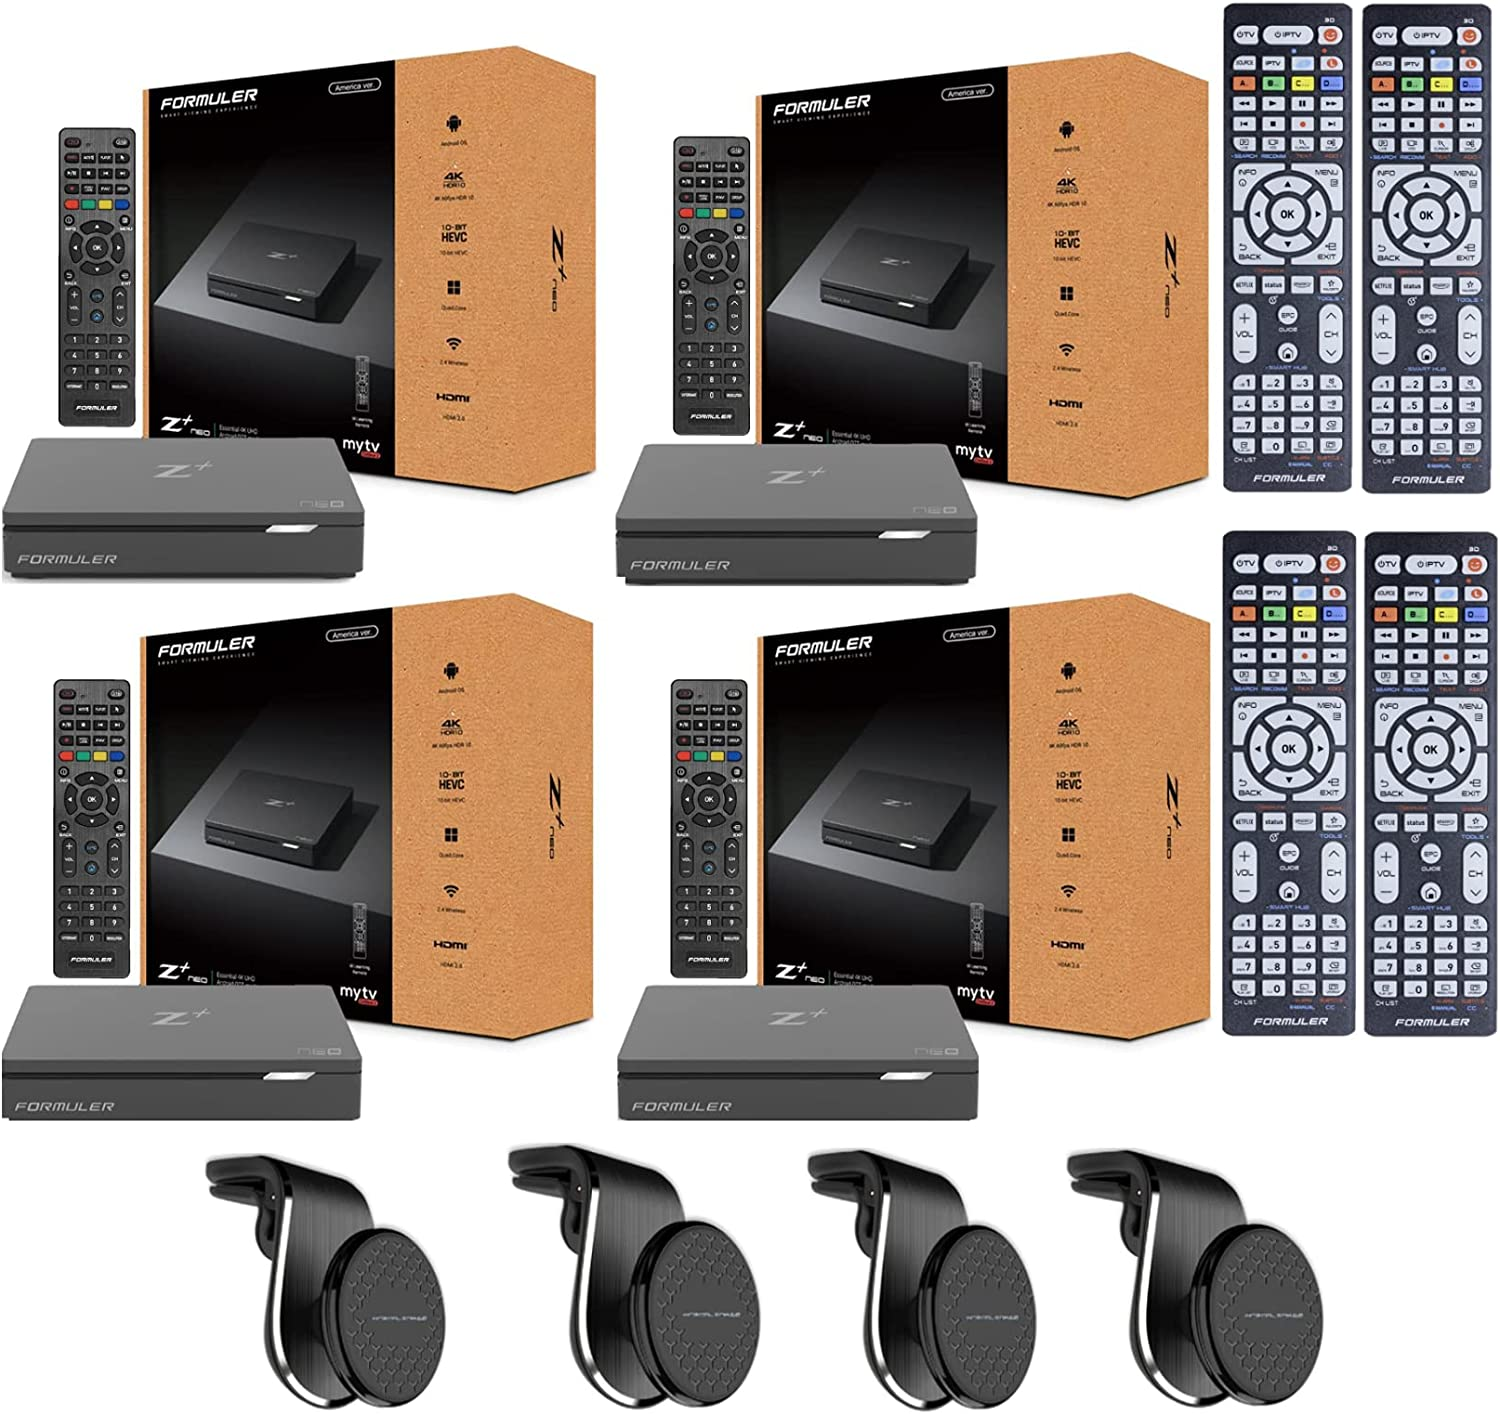 Pack of 4 - Formuler Z+ Plus Neo with Bonus Remote Control for All Samsung and LG TV's and Bonus Car Mount for All Smartphone